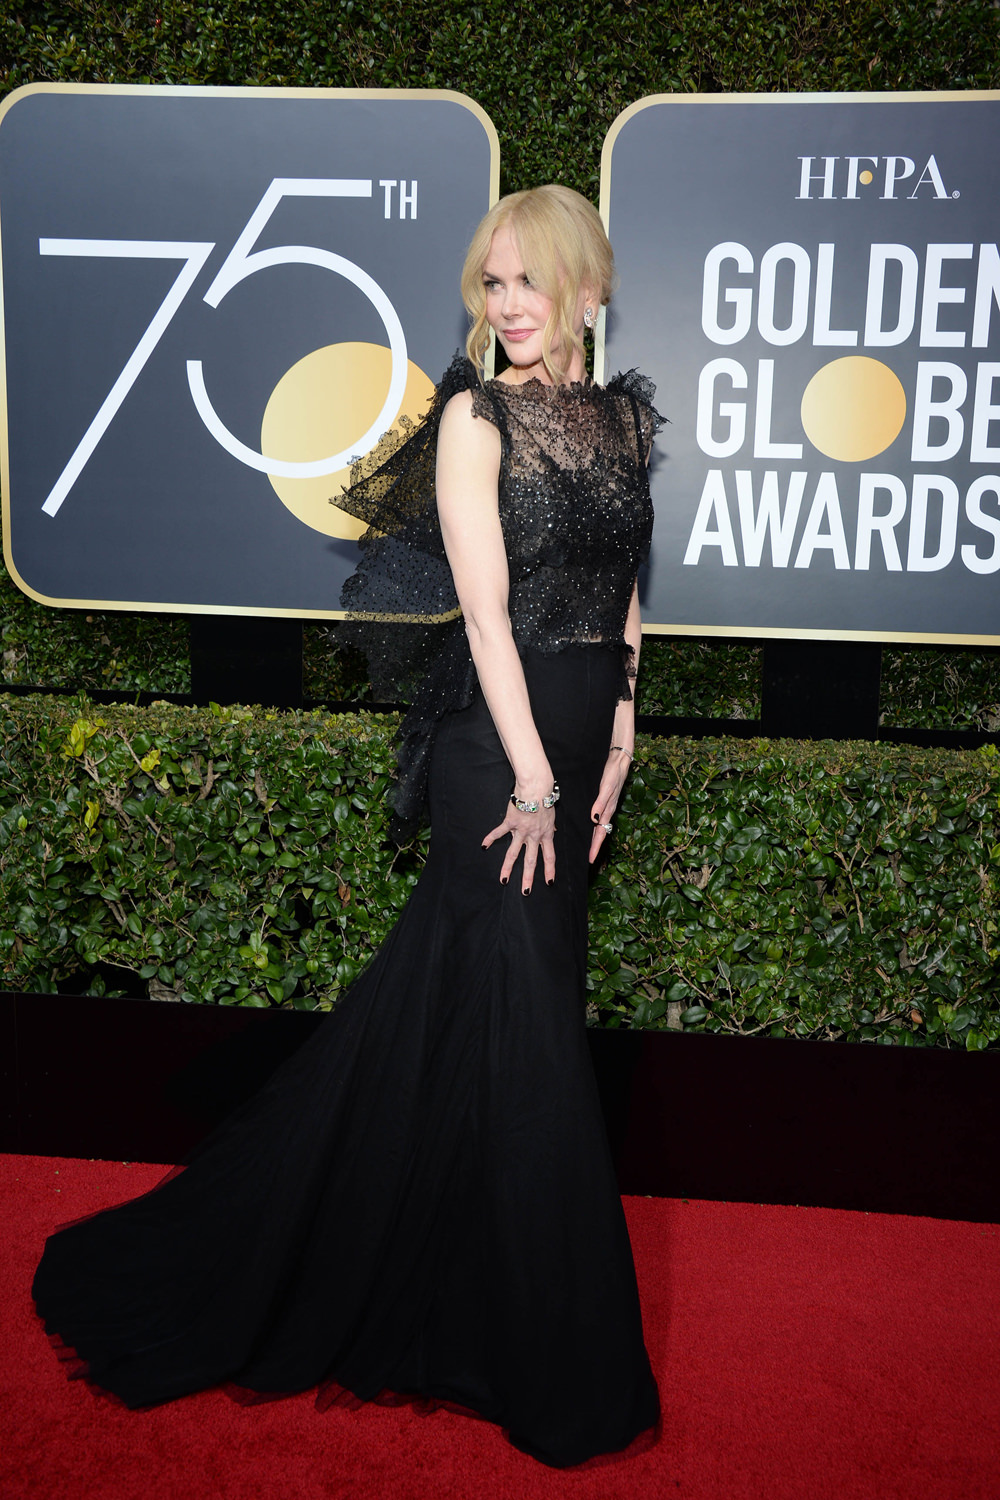 Nicole Kidman  - Wearing jaw-dropping black dress by Givenchy.